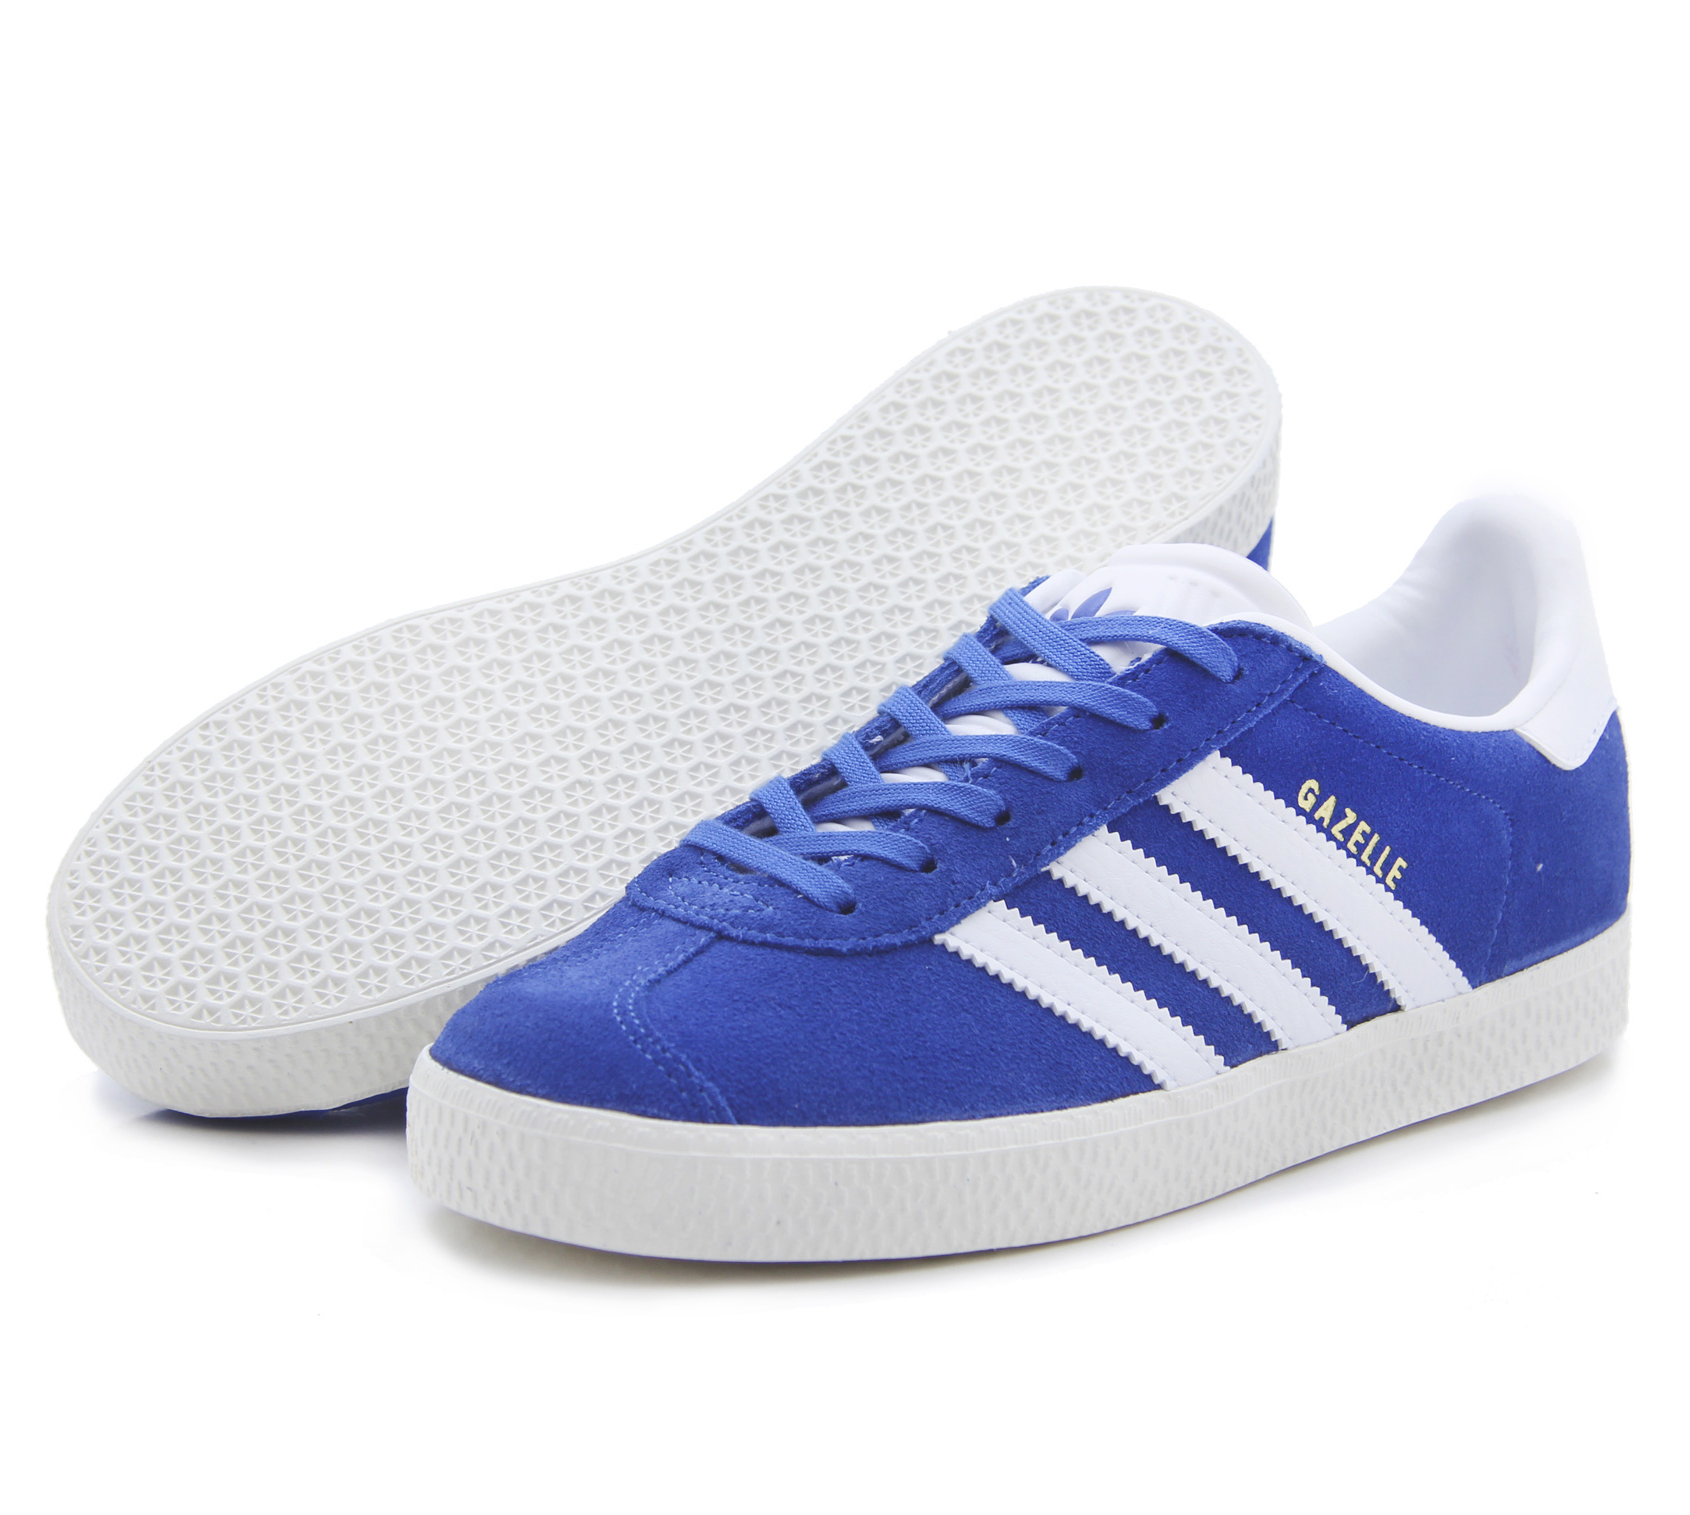 Adidas-Kids-Boys-Girls-Gazelle-Originals-Casual-Suede-